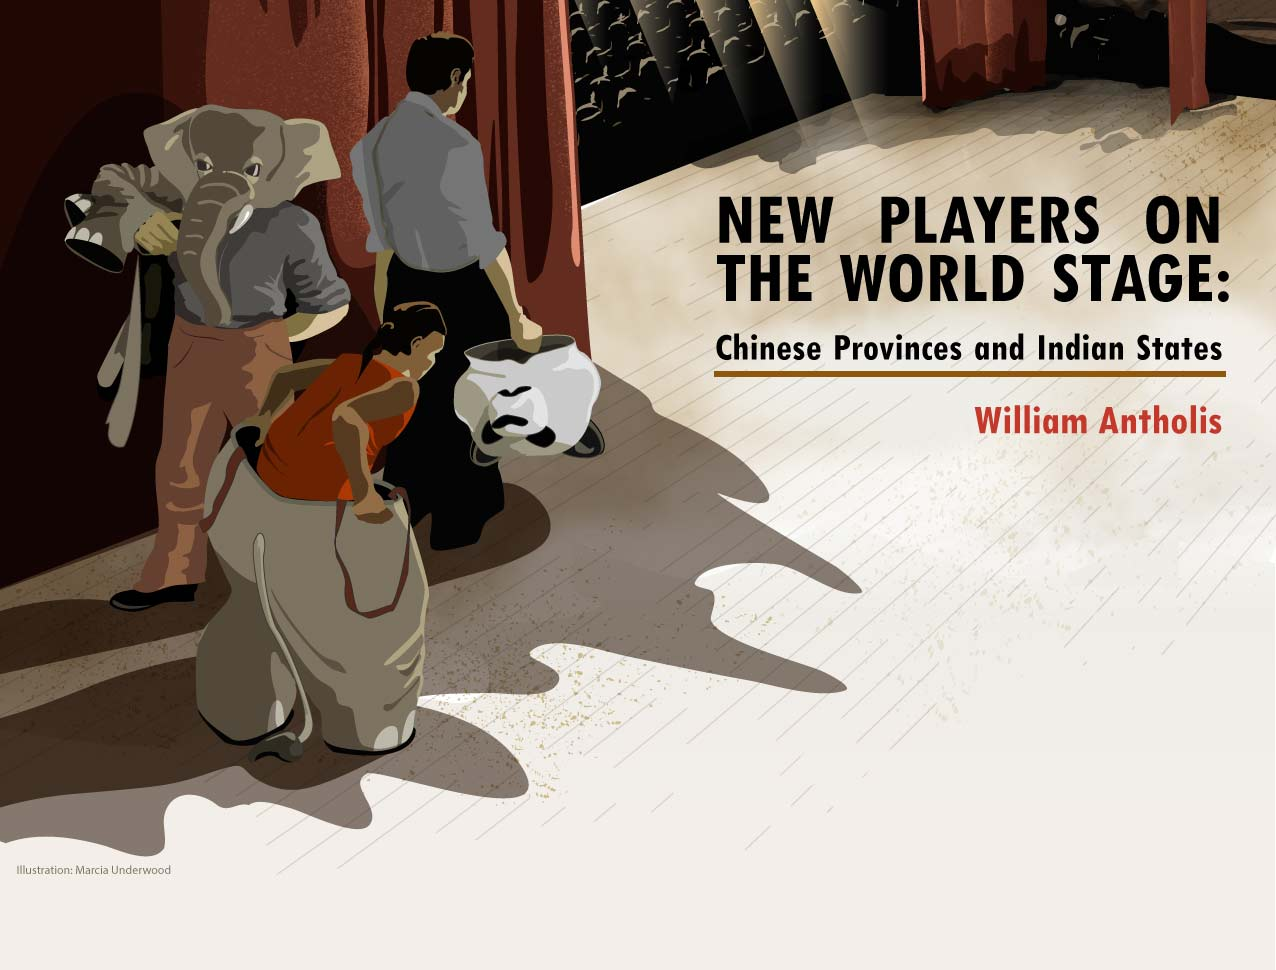 new players on the world stage chinese provinces and n states intro illustration